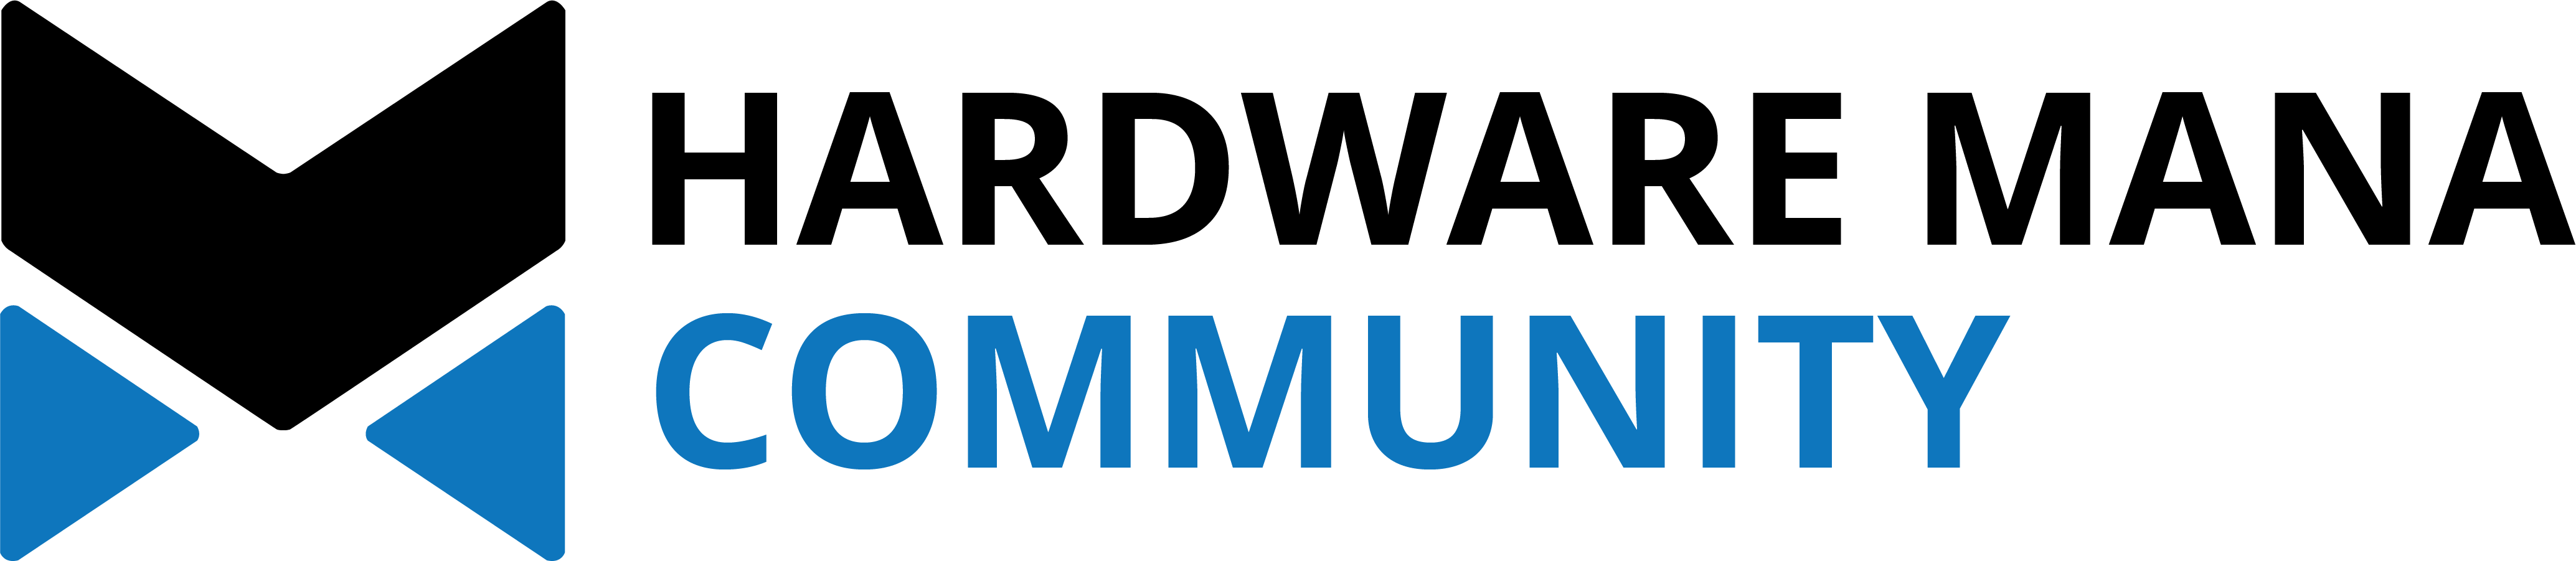 HardwareMana Community